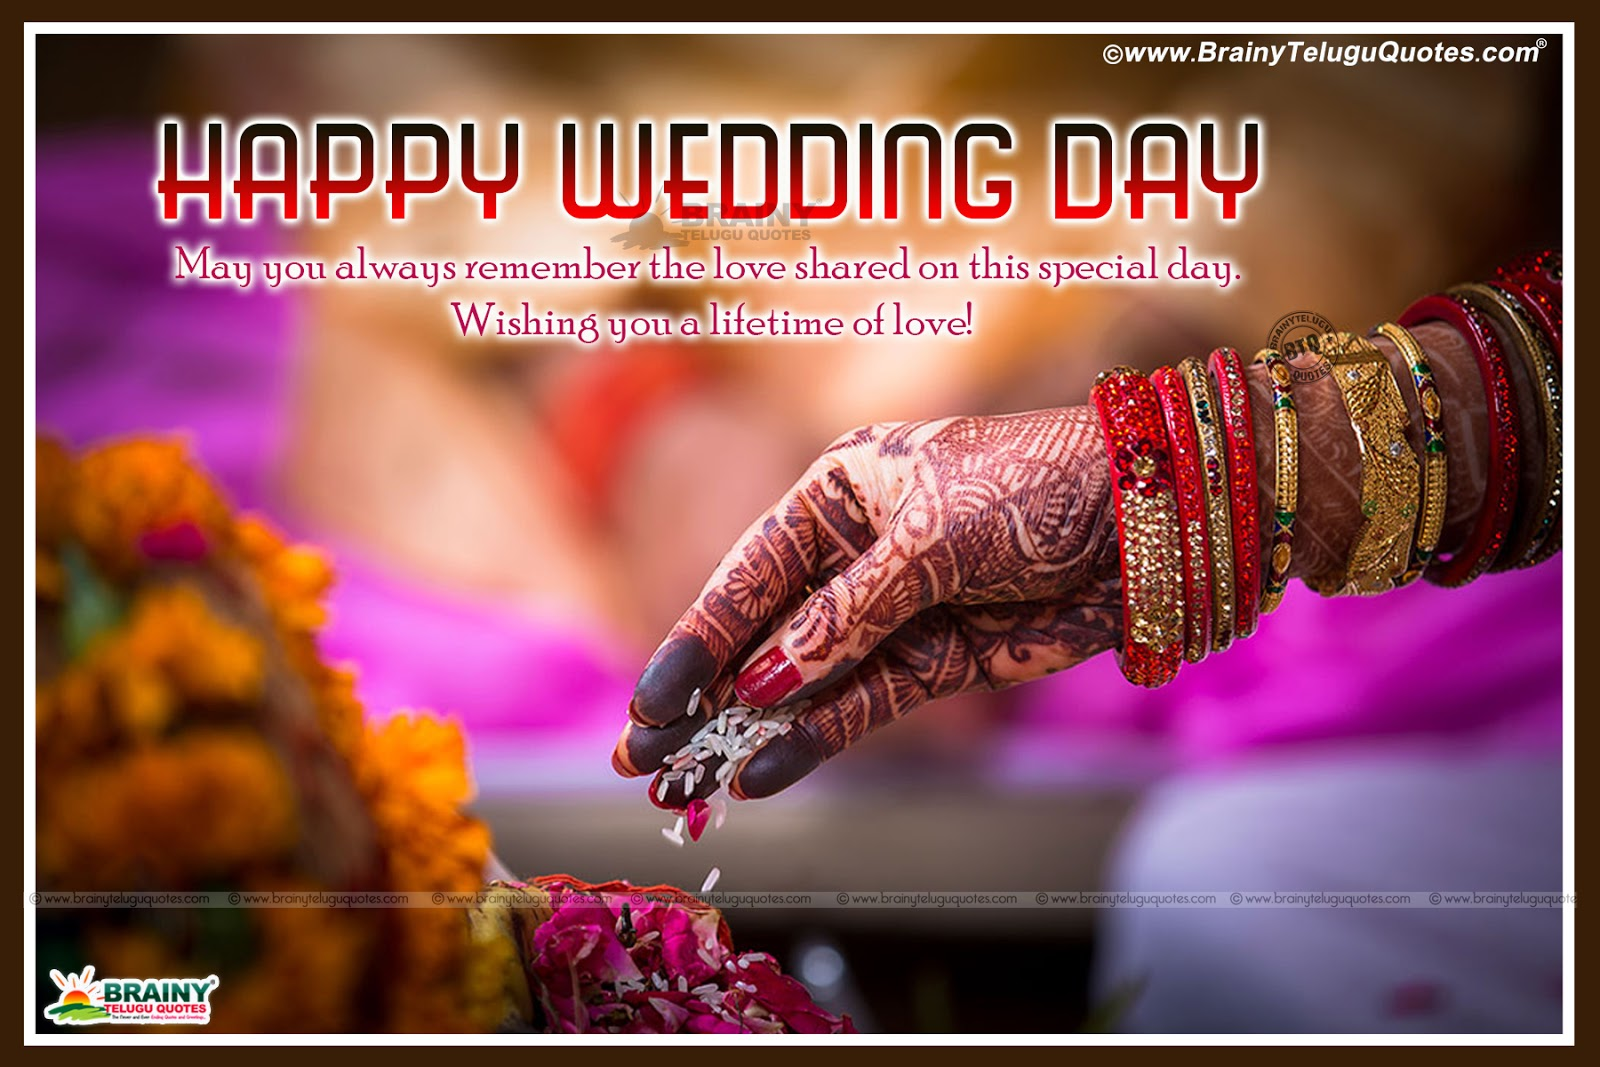 Happy Wedding Anniversary Day Telugu Quotes